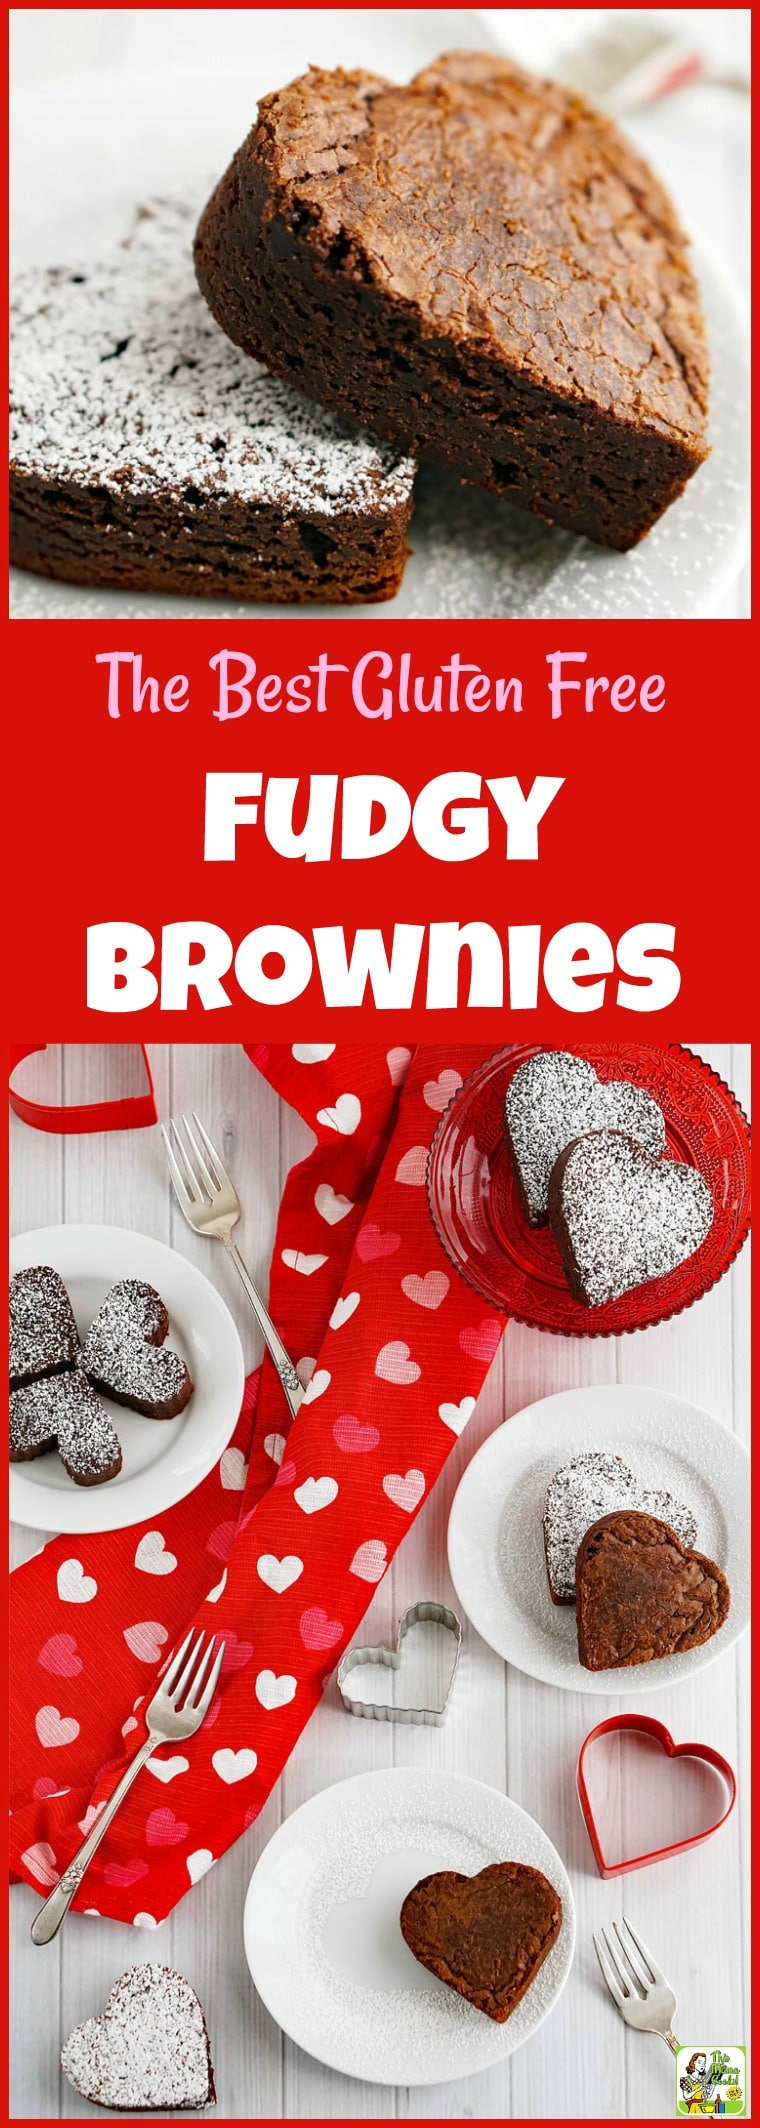 Looking for a gluten free fudgy brownie recipe? Try the Best Gluten Free Fudgy Brownies Ever! Click to get this easy gluten free brownie recipe. Perfect for Valentine's Day! #valentinesday #brownies #browniesrecipe #chocolate #glutenfreerecipes #glutenfreebaking #desserts #dessertrecipes #dessertideas #recipe #easy #recipeoftheday #healthyrecipes #glutenfree #easyrecipes